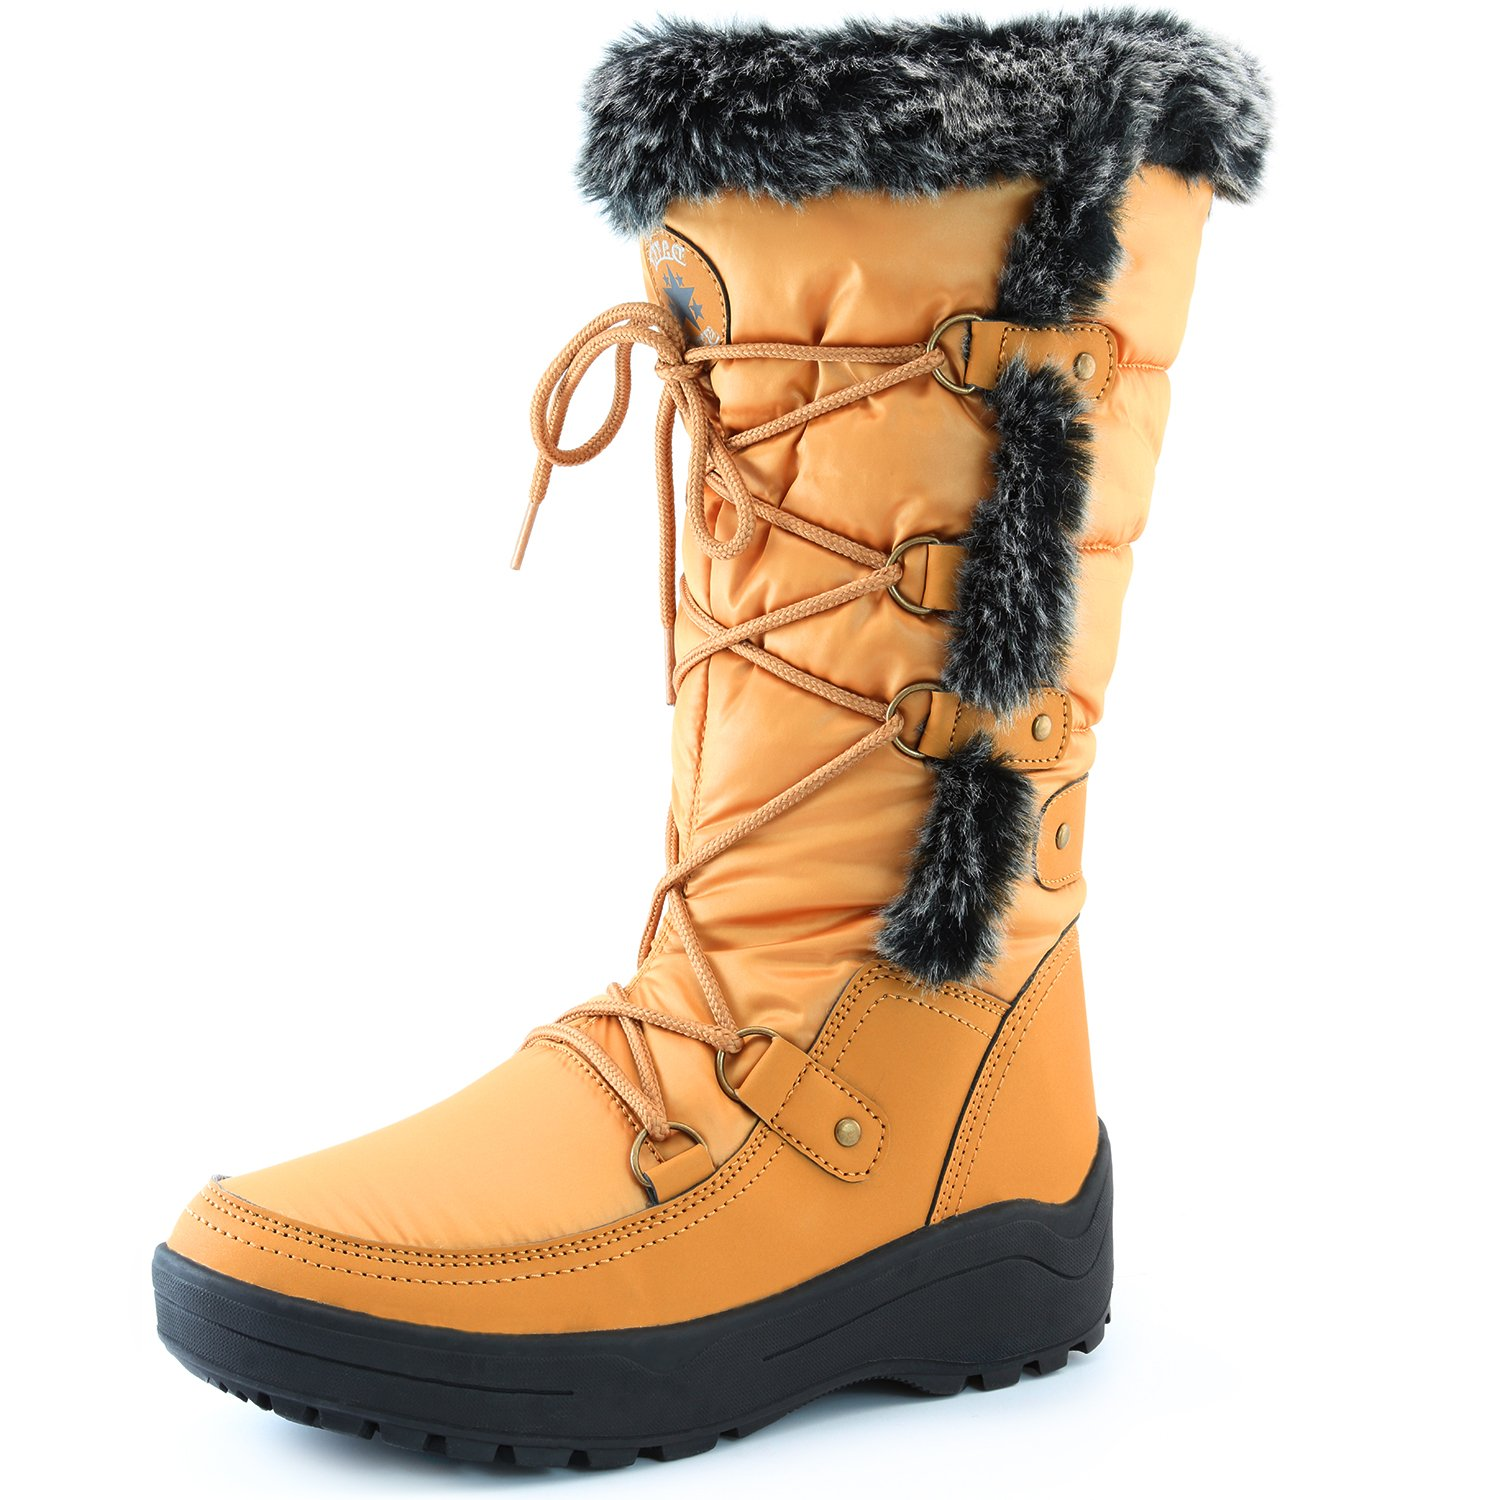 DailyShoes Knee High Faux Fur Lined Snow Boots Bootie Winter Warm Mid Calf Lace Up D Ring Backpacking Classic Heels Insole Eskimo Boot for Women Alaska-01 Mustard 8 by DailyShoes